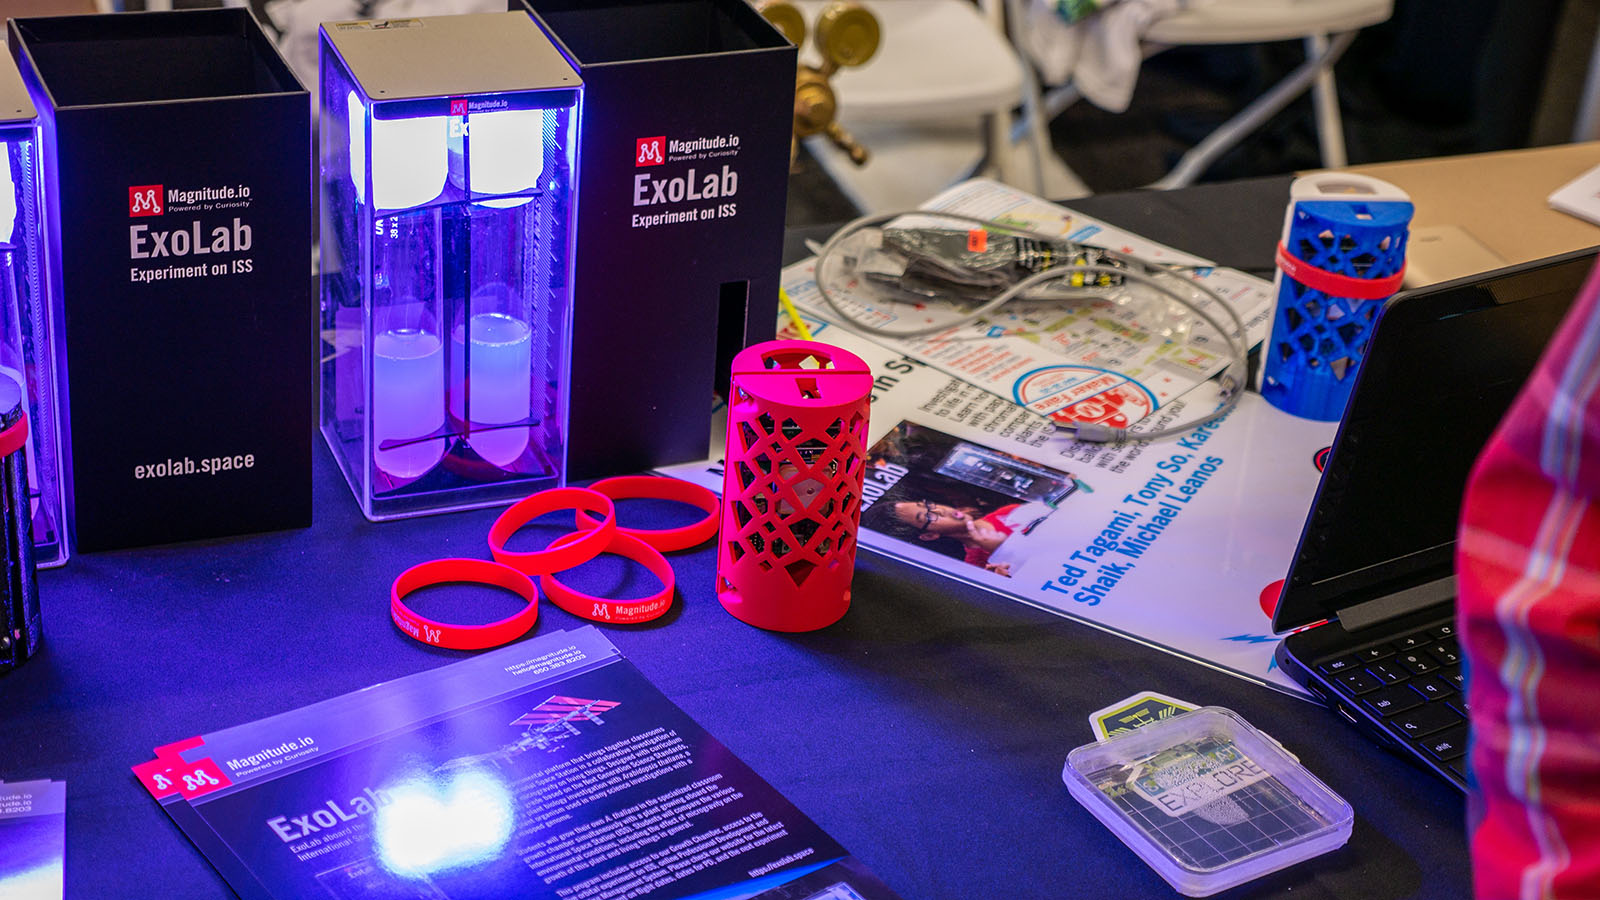 ExoLab - Experiments in SPACE!